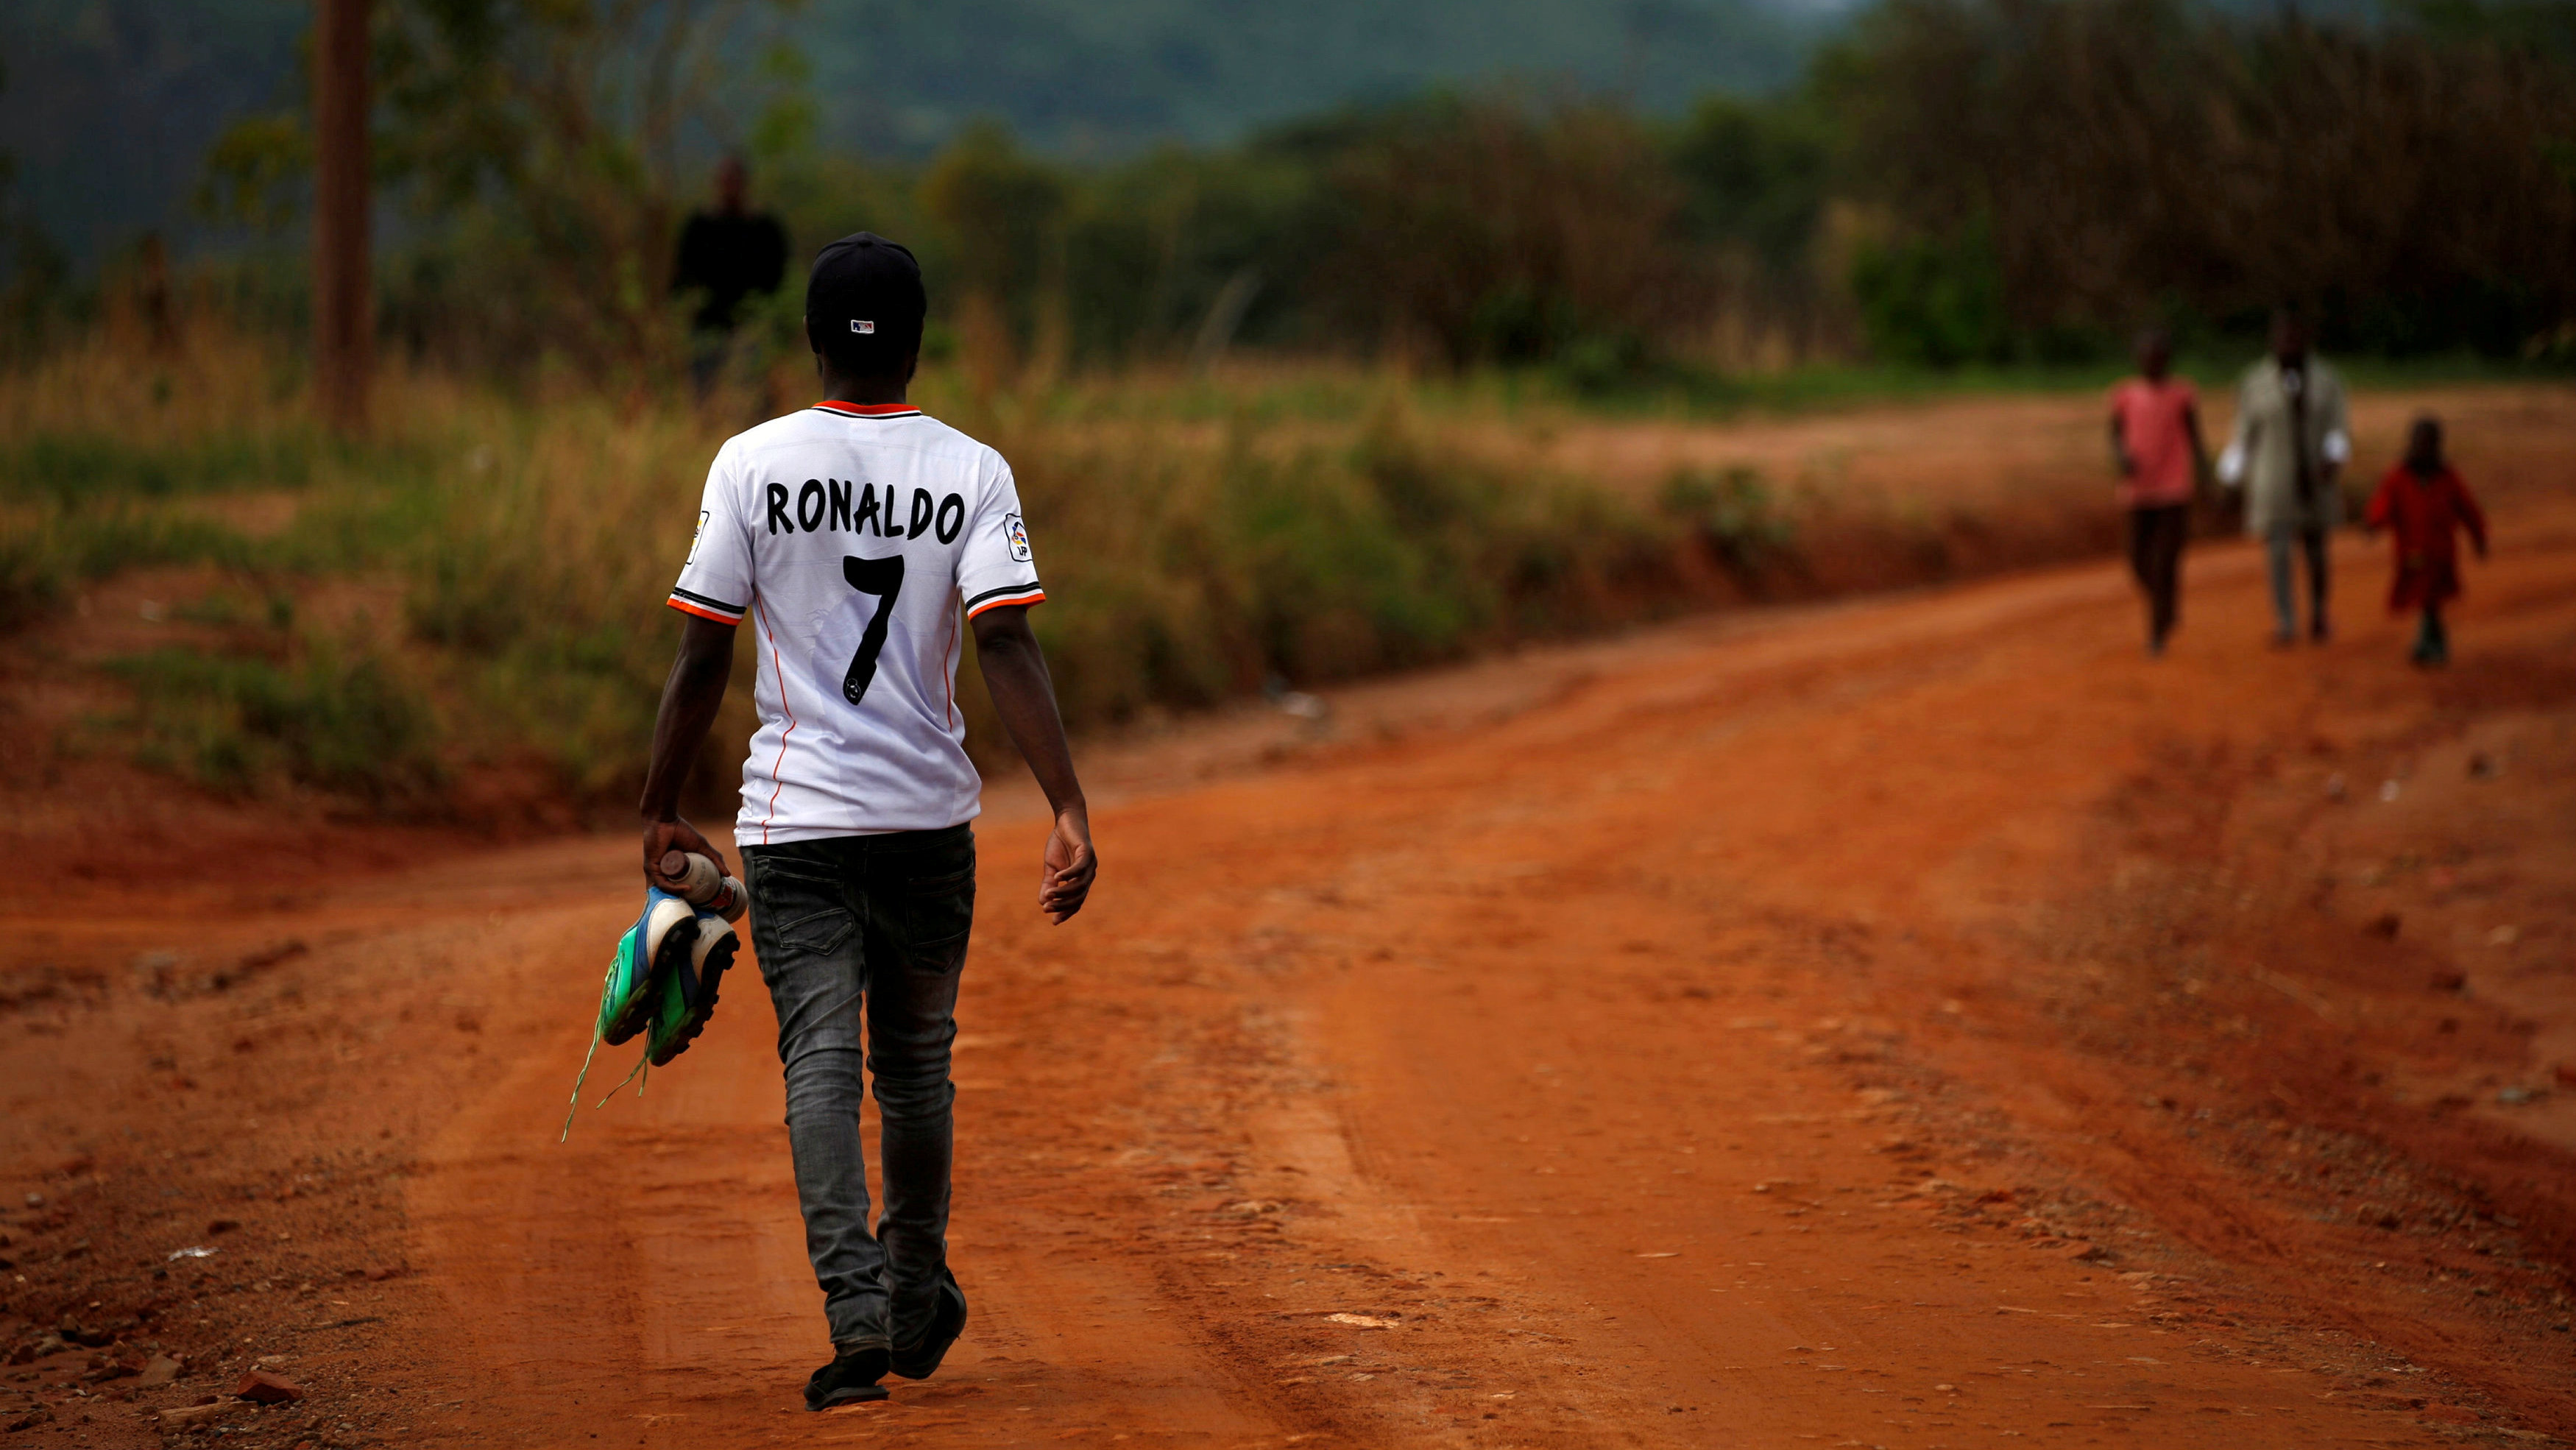 A man wearing a Ronaldo t-shirt and holding soccer shoes walks to take part in a soccer match in Chishawasha village, 27 km east of the capital Harare, Zimbabwe, November 26, 2017.